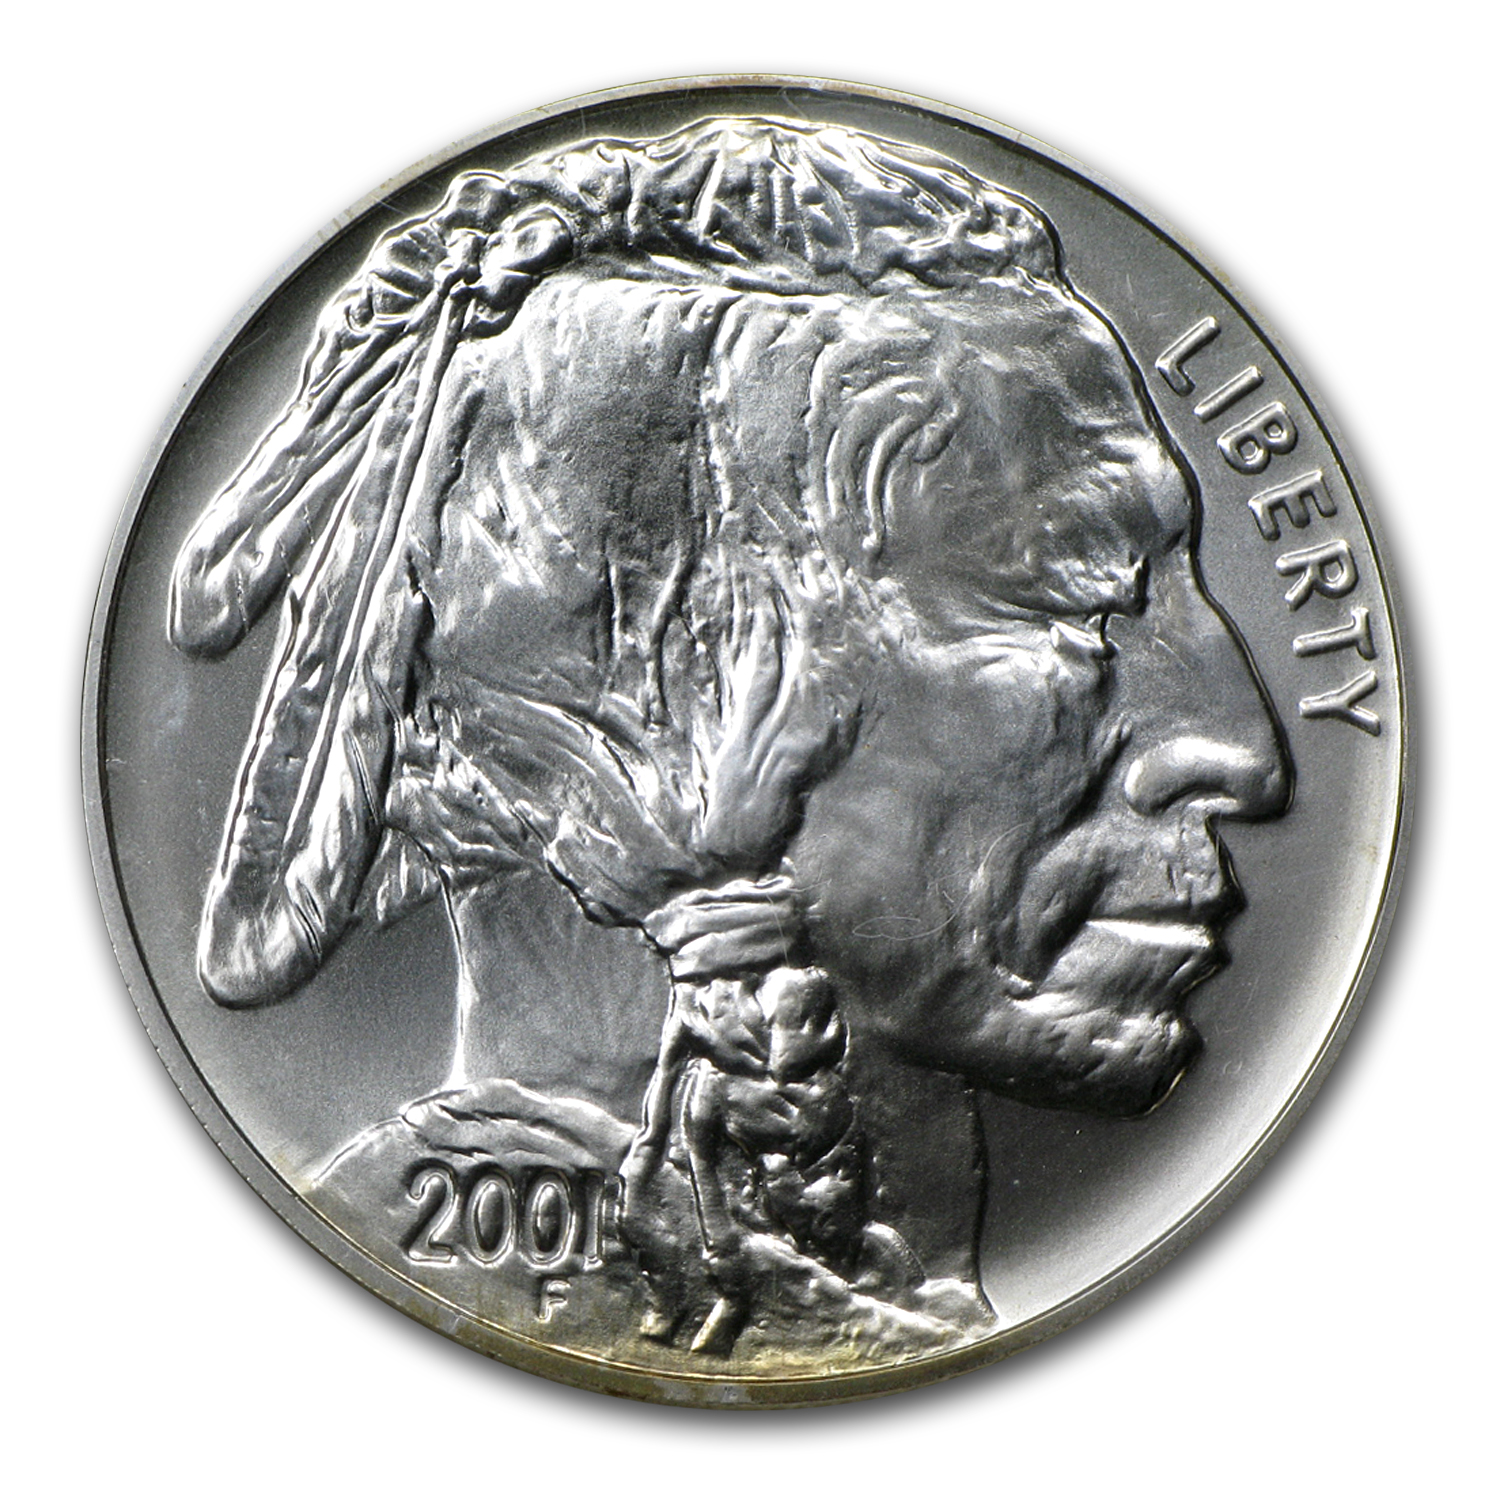 2001 American Buffalo $1 Silver Commem - Coin & Currency Set